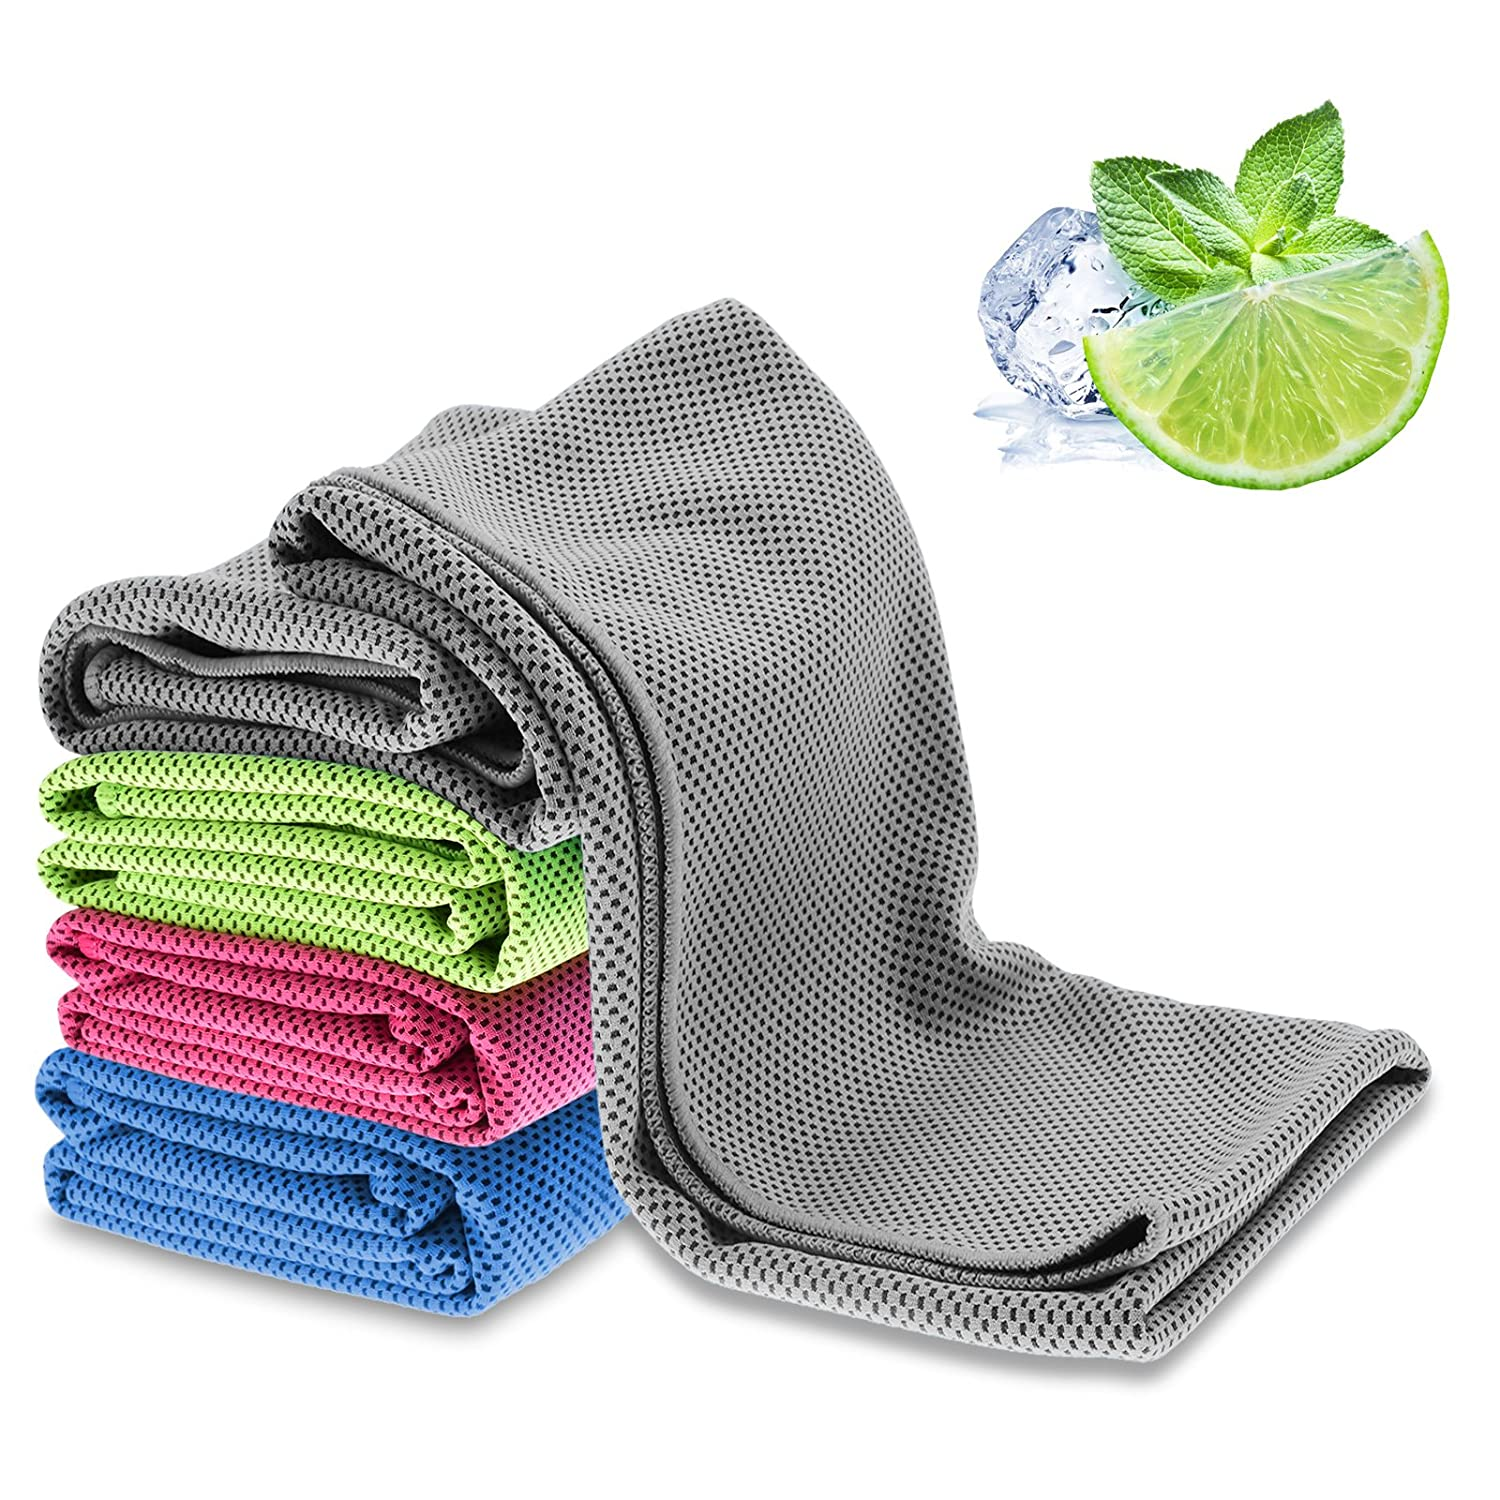 BWISH 1PCS Cooling Towel Reusable Super Soft Breathable Mesh Sweat-Absorbent Towel for Workout, Fitness, Running, Gym, Yoga, Pilates, Travel, Camping, Hiking and other Sports